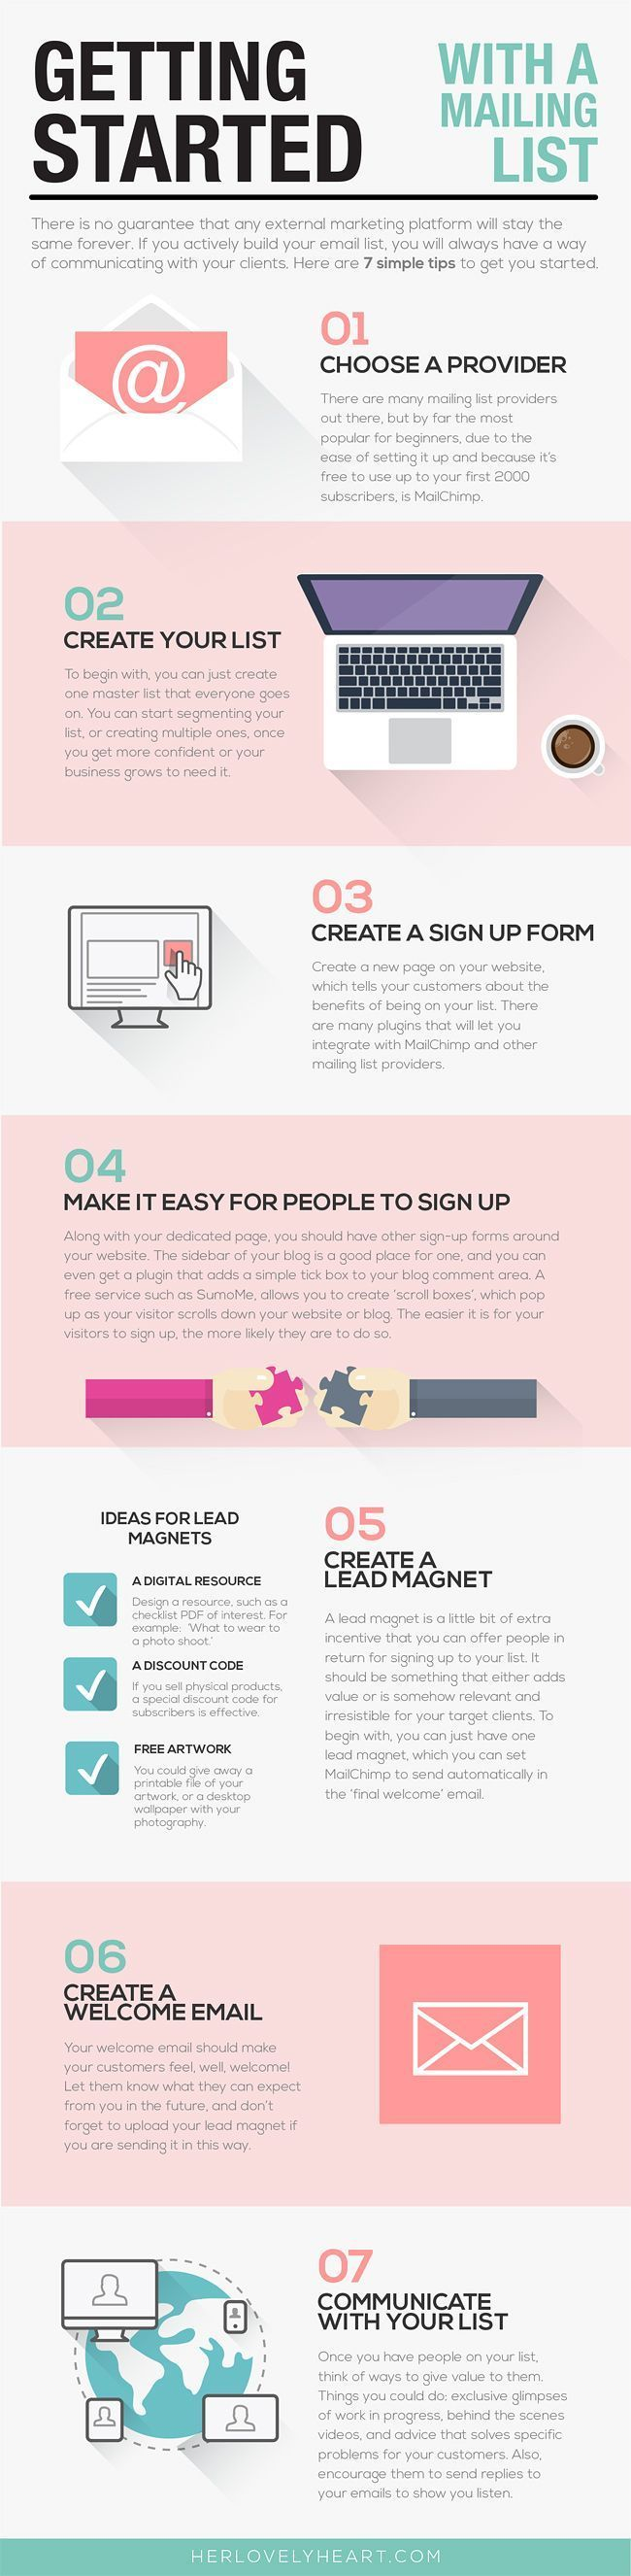 Infographic: how to get started with setting up your email list. Click through to download a free mailing list content worksheet.: